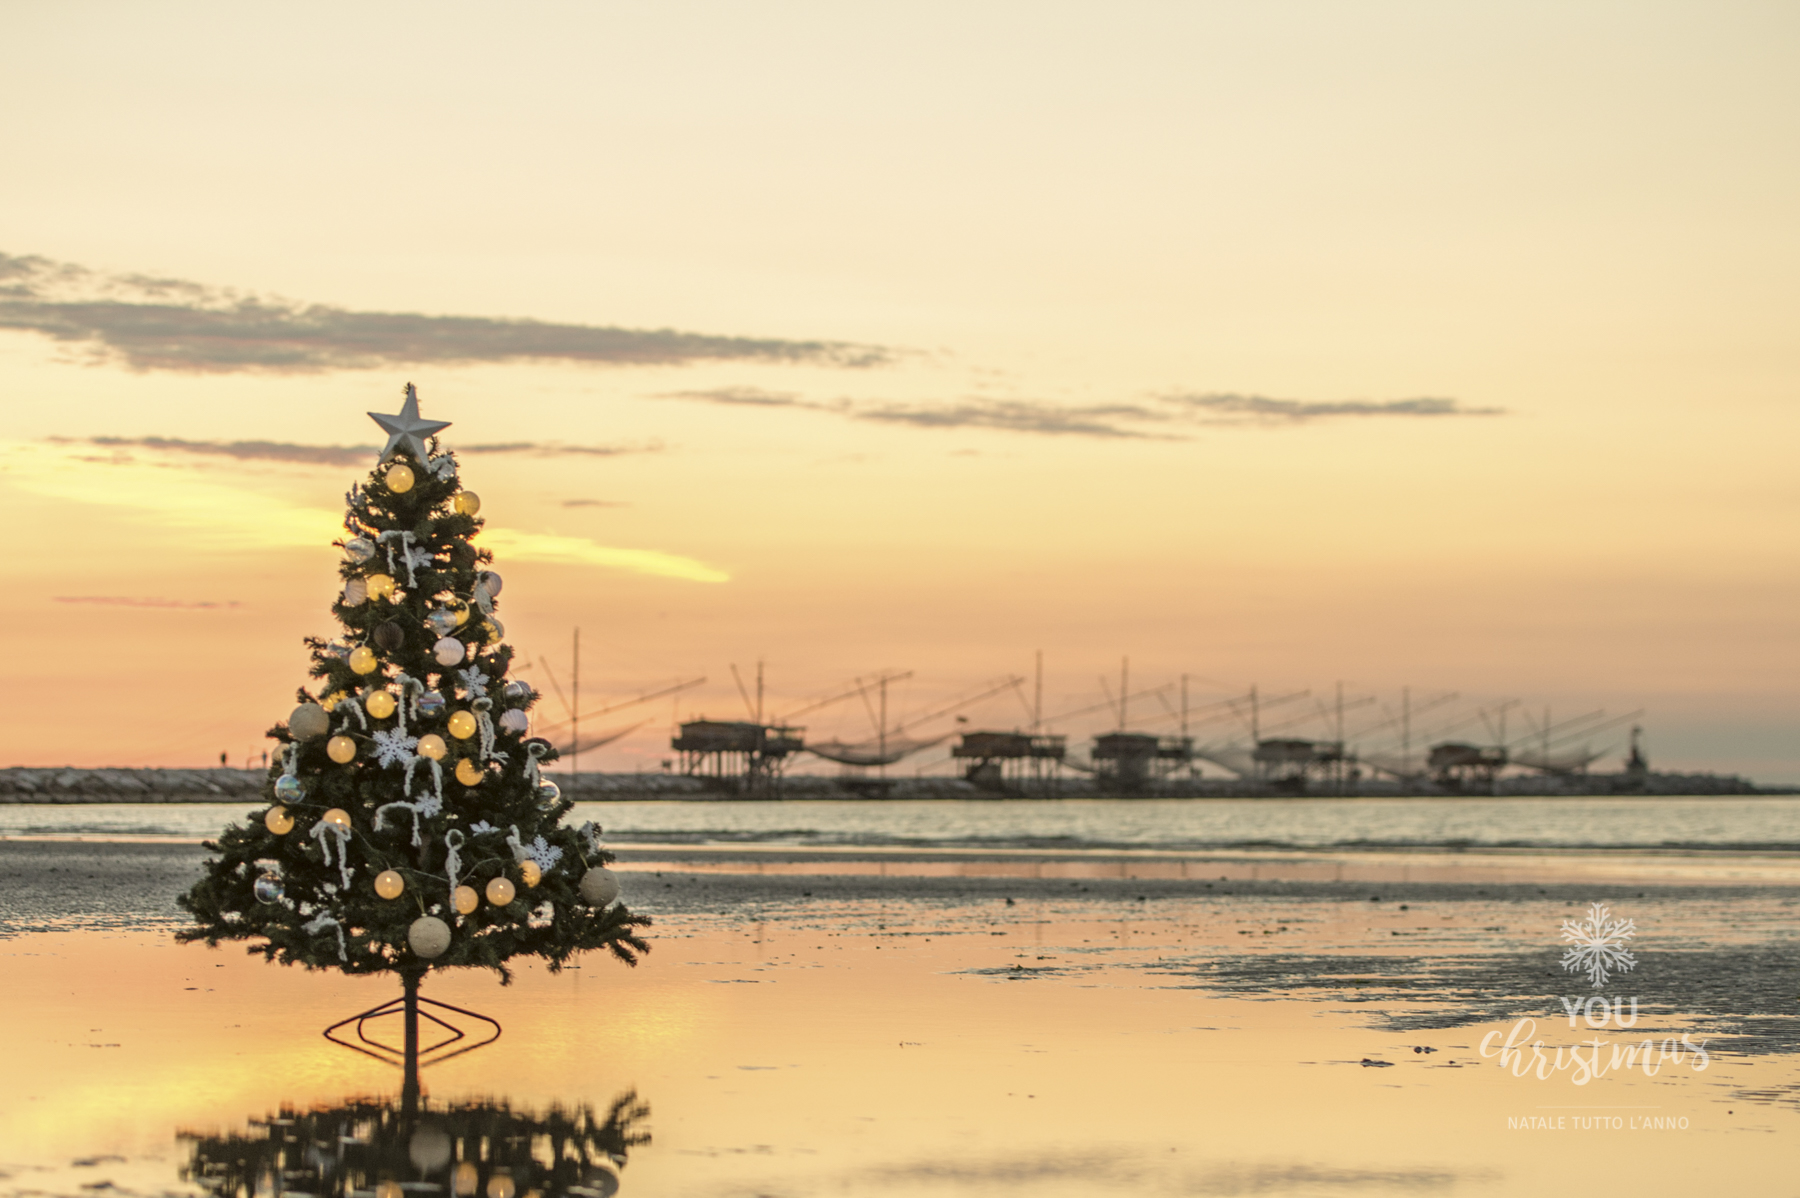 Immagini Natale Mare.You Christmas Ed Il Mare La Magia Del Natale All Alba In